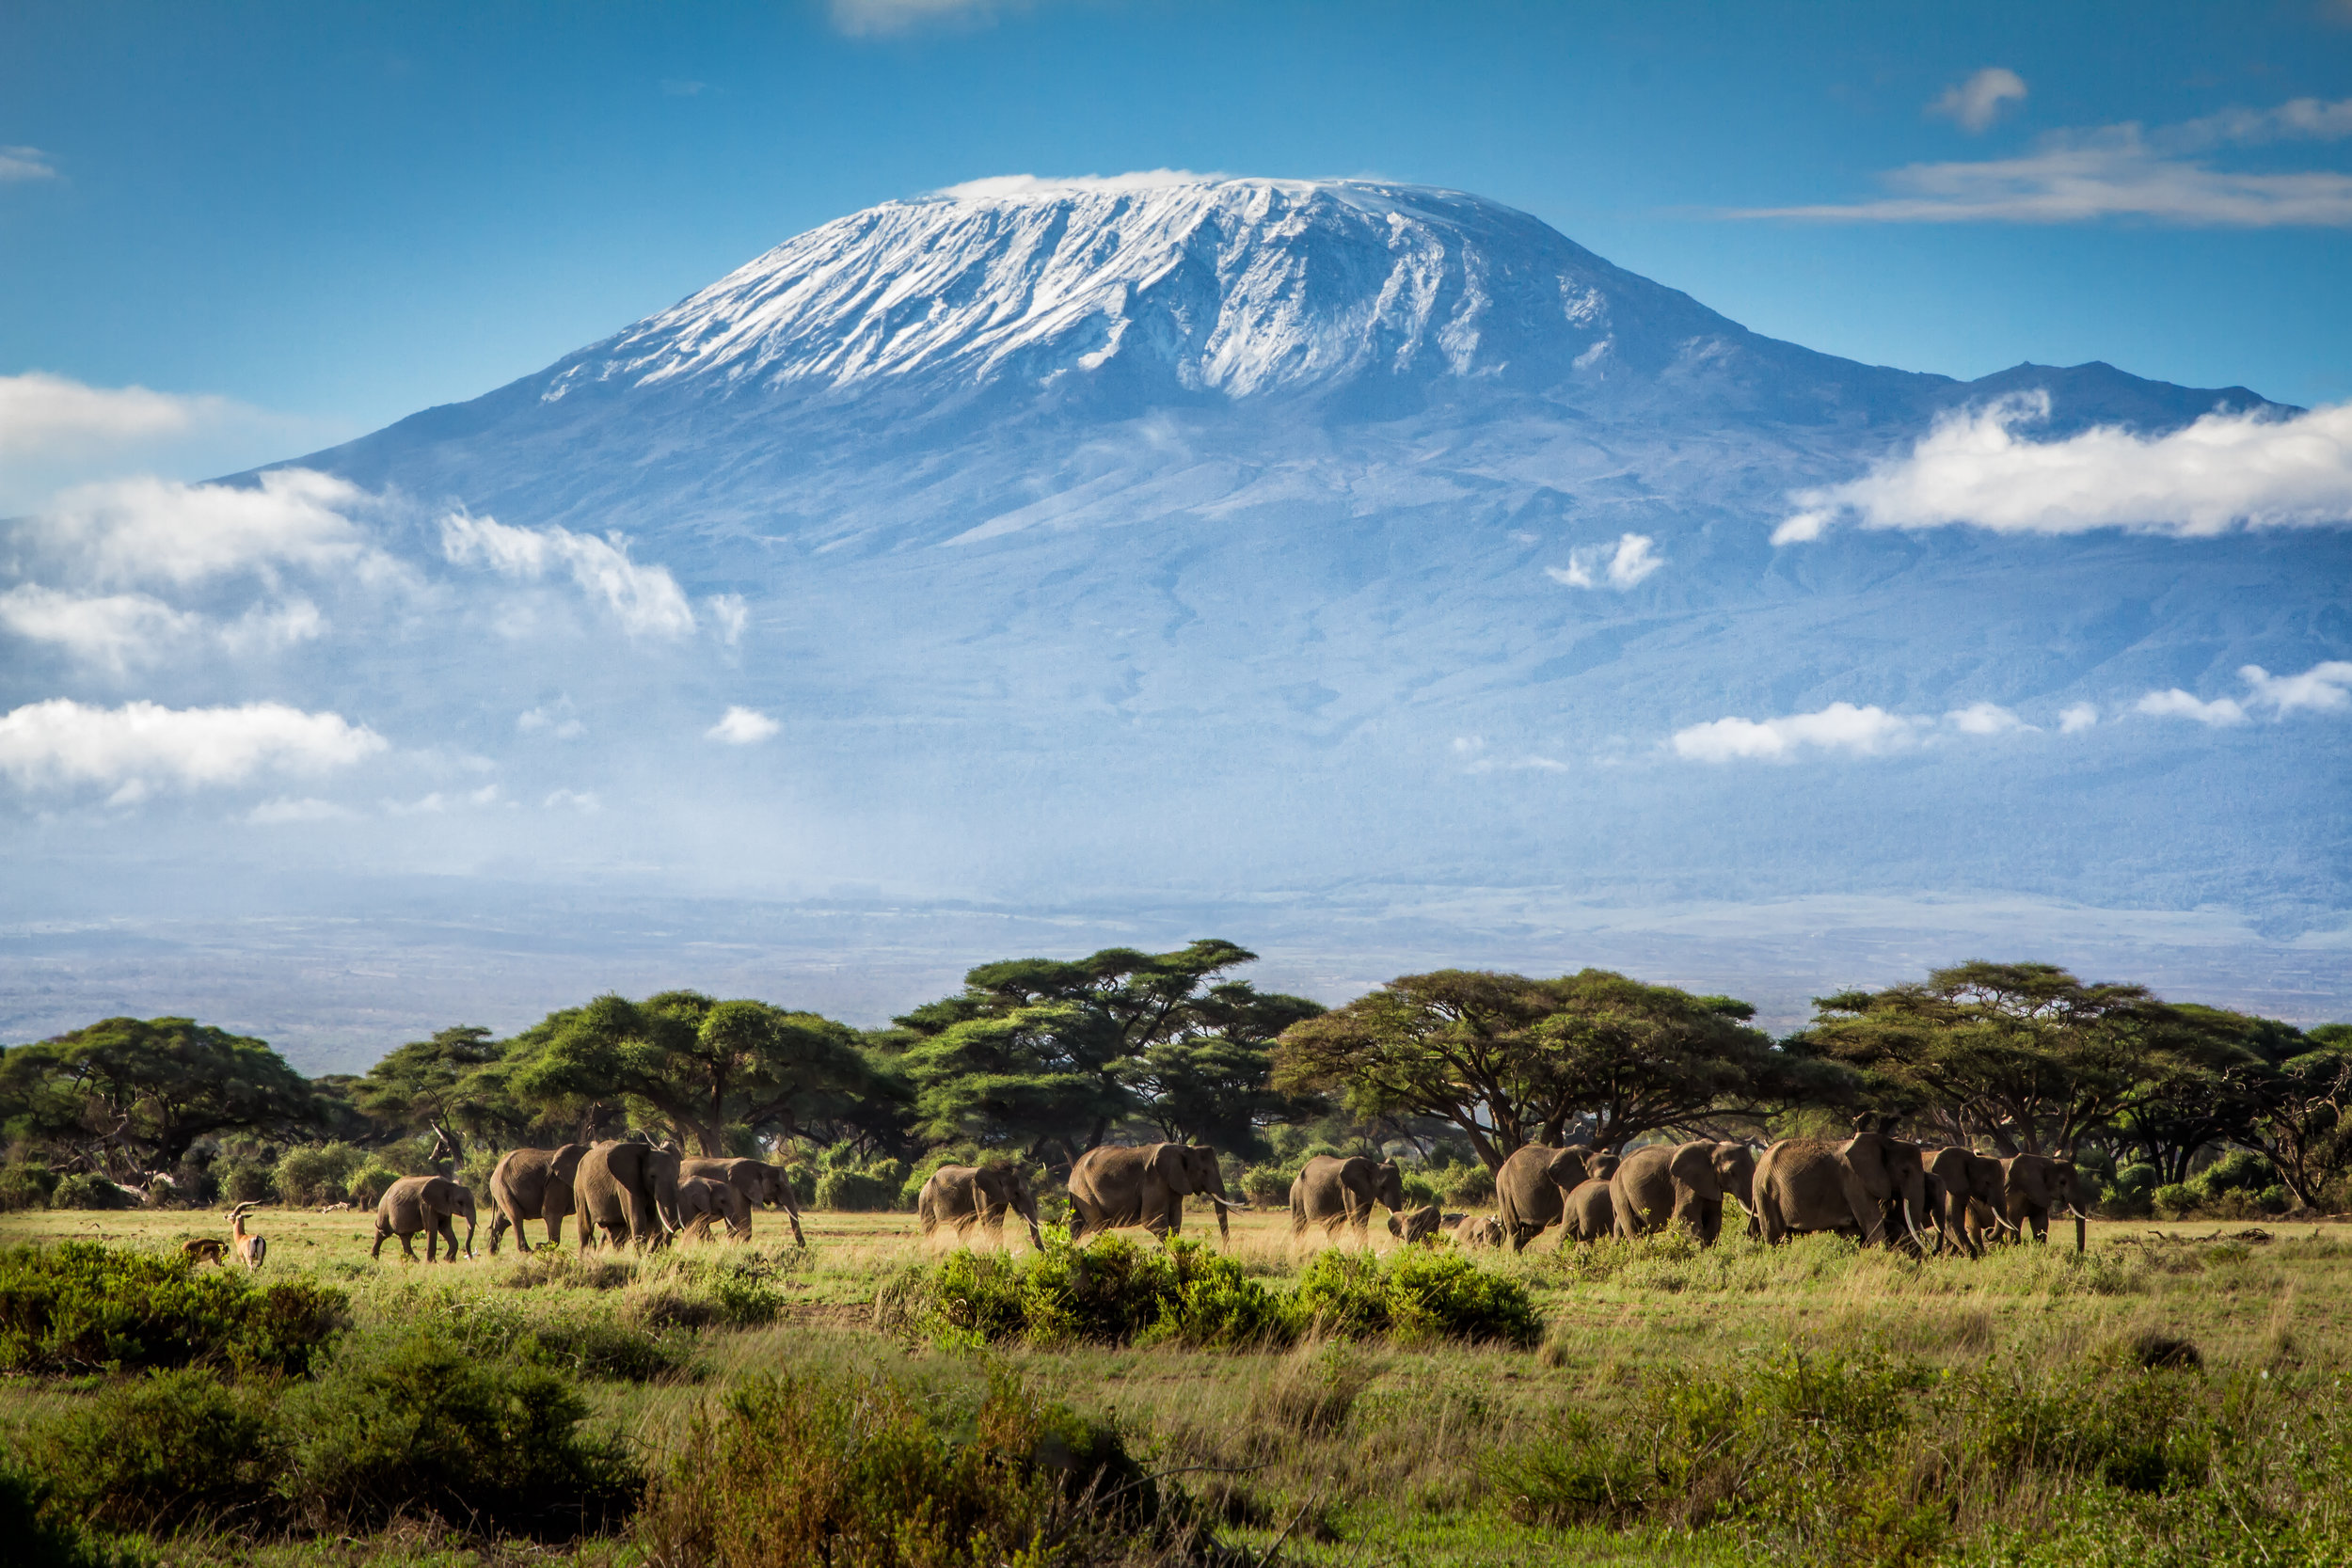 View of Mt. Kilimanjaro from Kenya with elephants in the foreground. © Ian Lenehan/500px